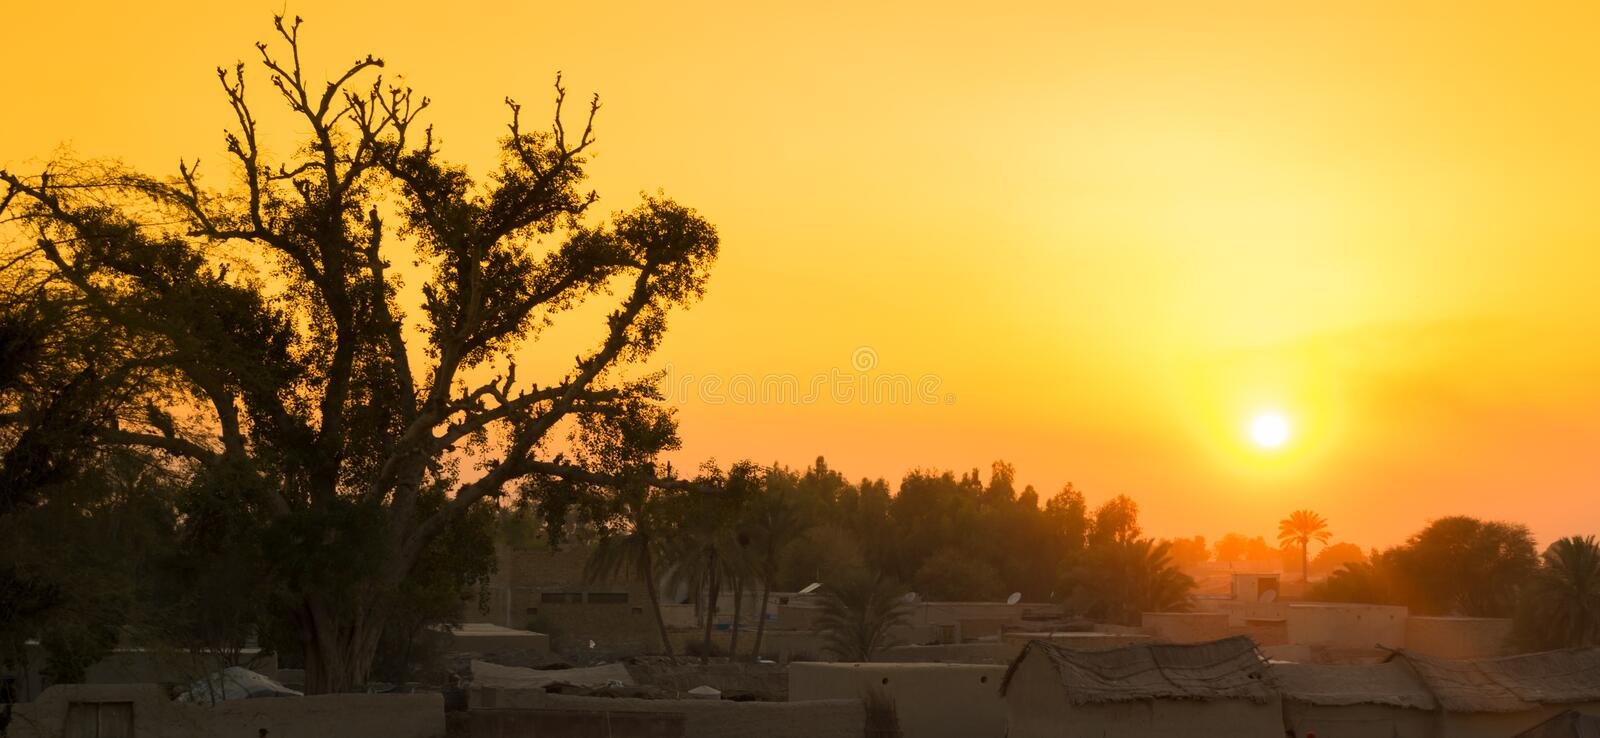 Beautiful landscape image of sunset over a village royalty free stock photography